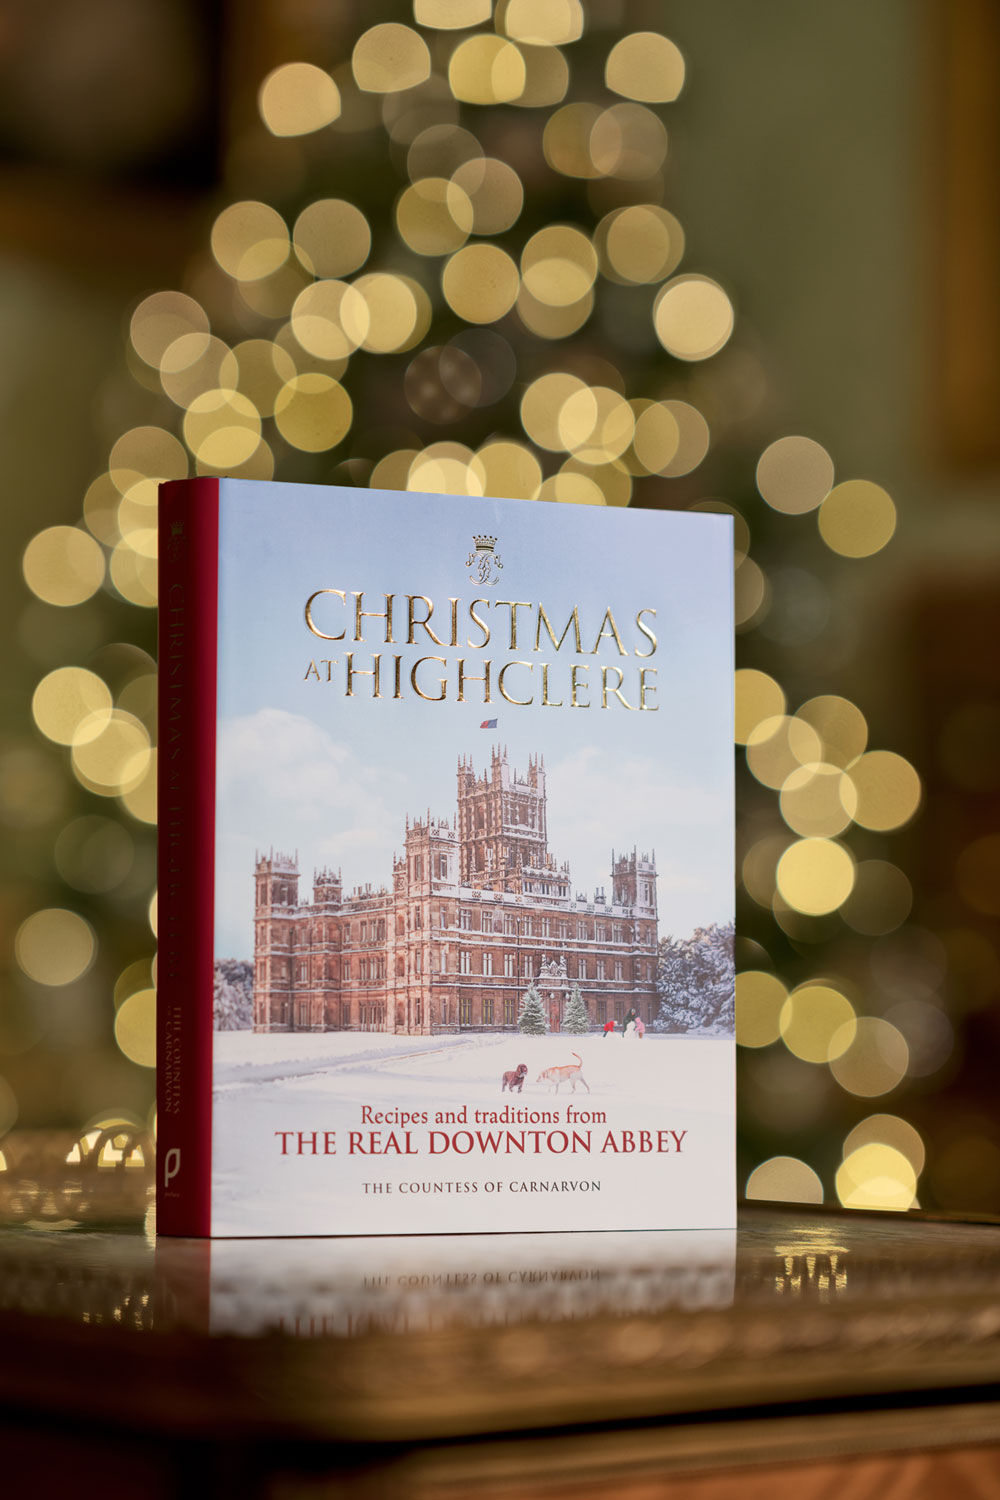 Highclere Book - Adam Hillier Commercial Photography